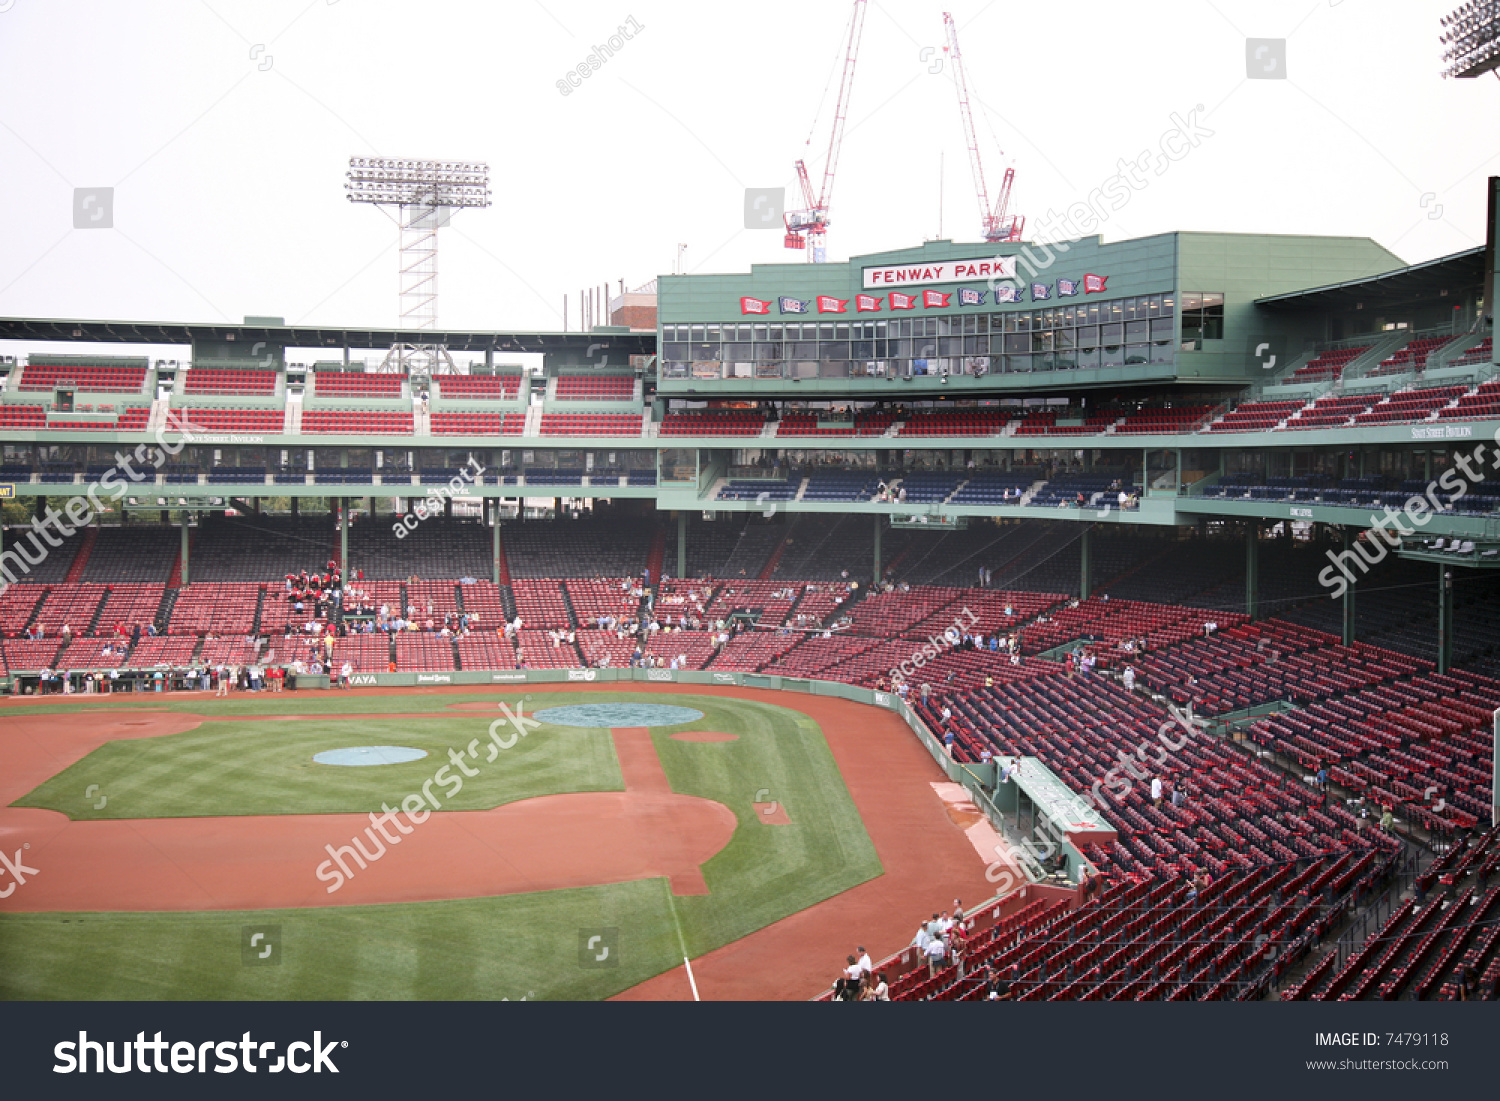 Fenway Park Baseball Stadium In Boston Massachusetts Home To The Red Sox